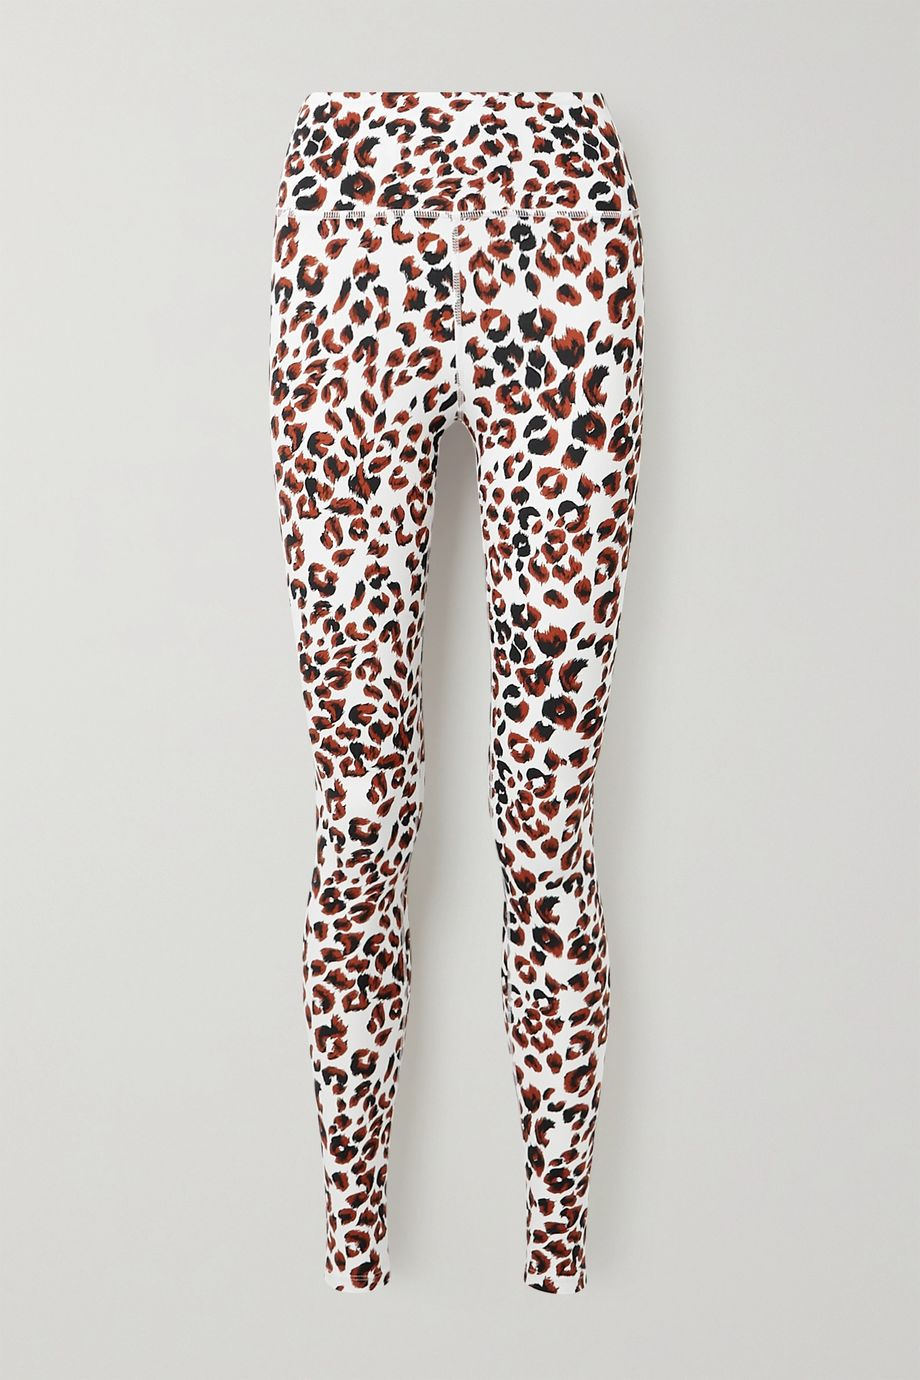 Varley Duncan animal-print stretch leggings